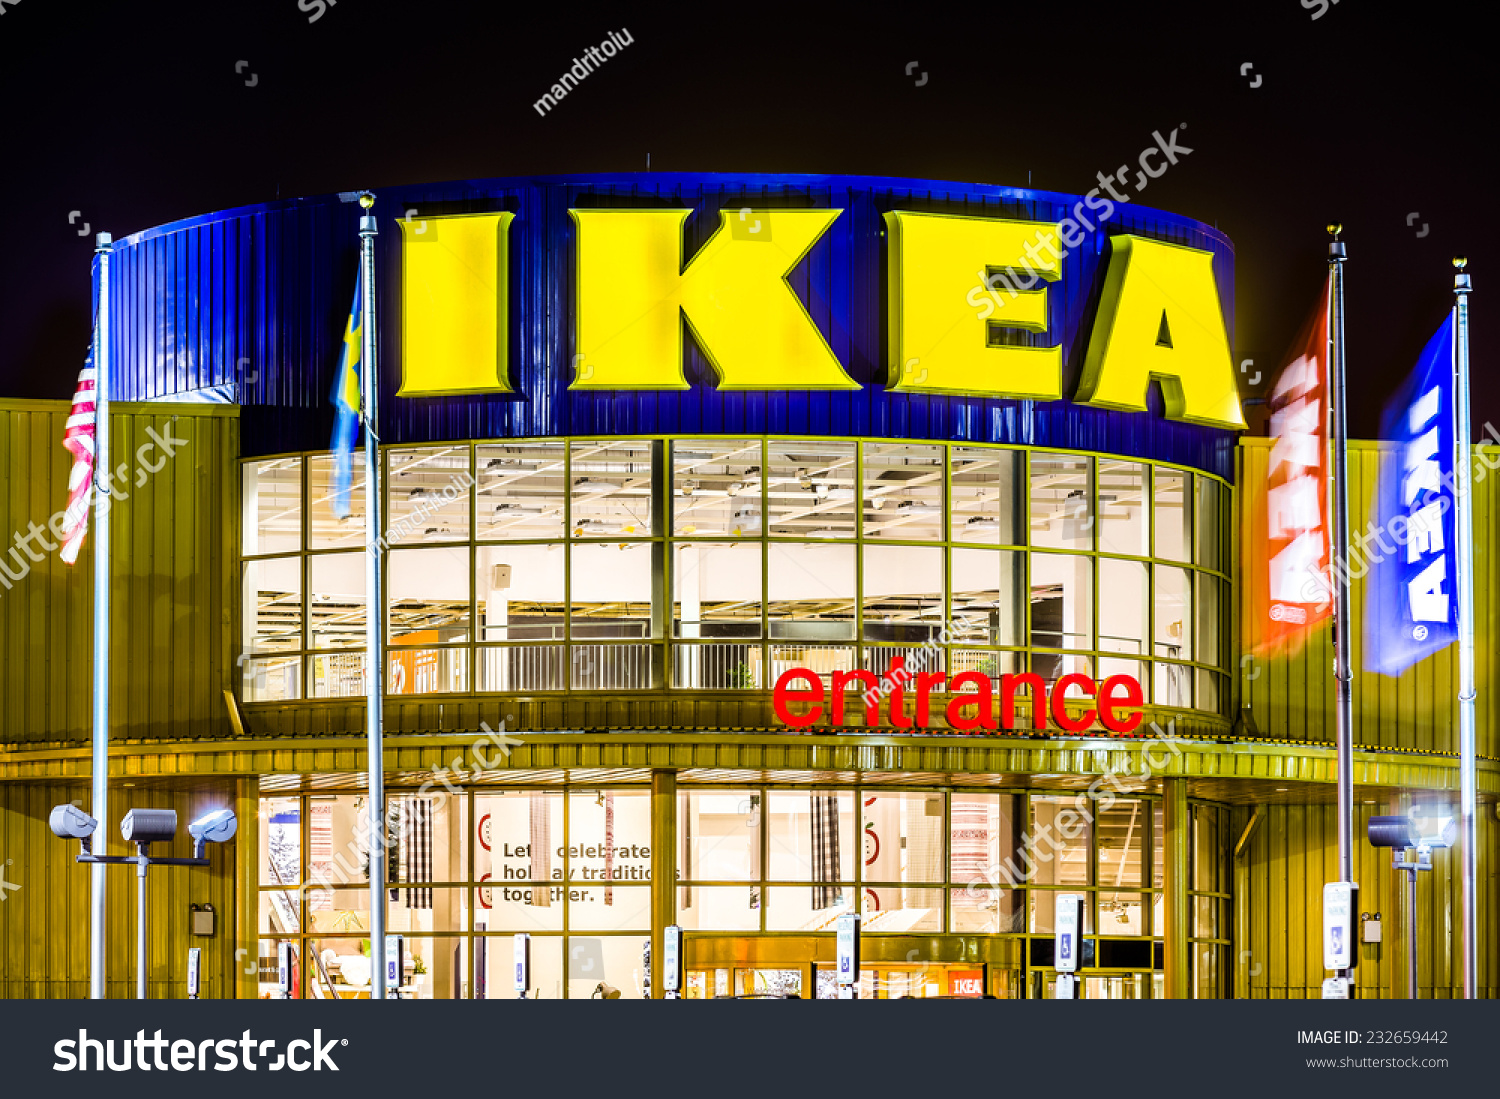 Ikea Elizabeth Hours Elizabeth Nj Usa November 23 2014 Stock Photo Edit Now 232659442